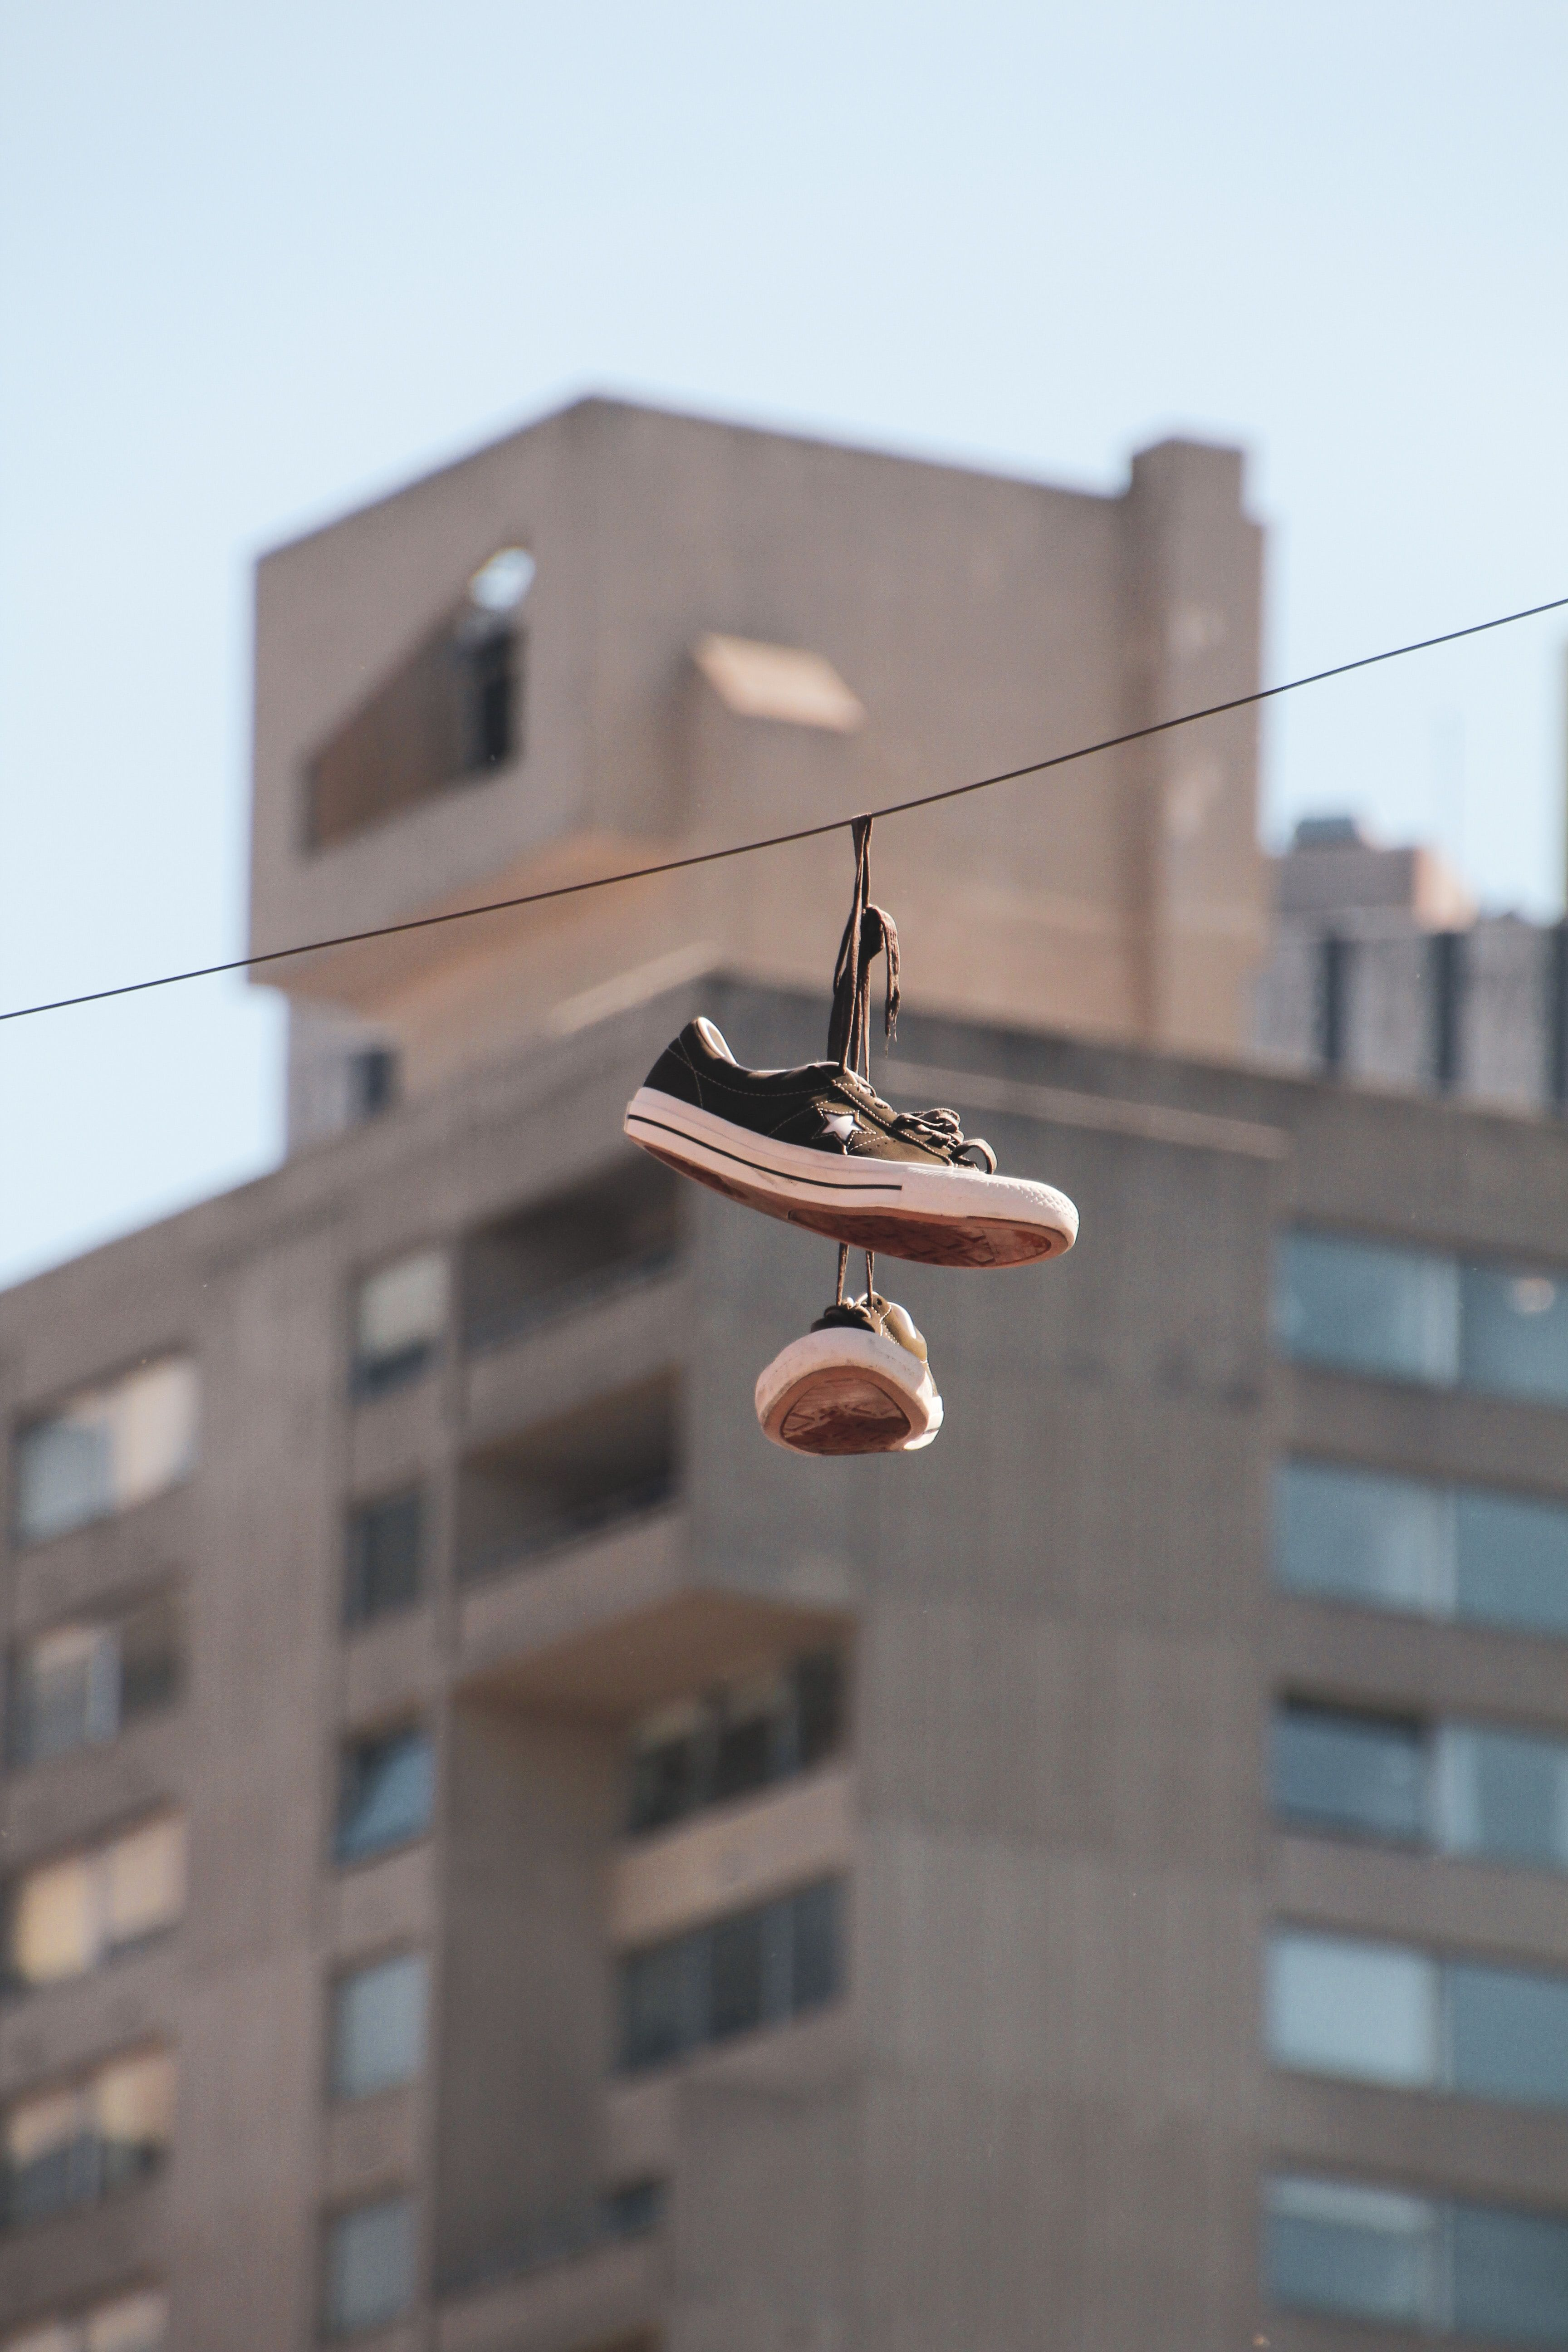 New York, NY, USA, shoes hanging from a wire over the